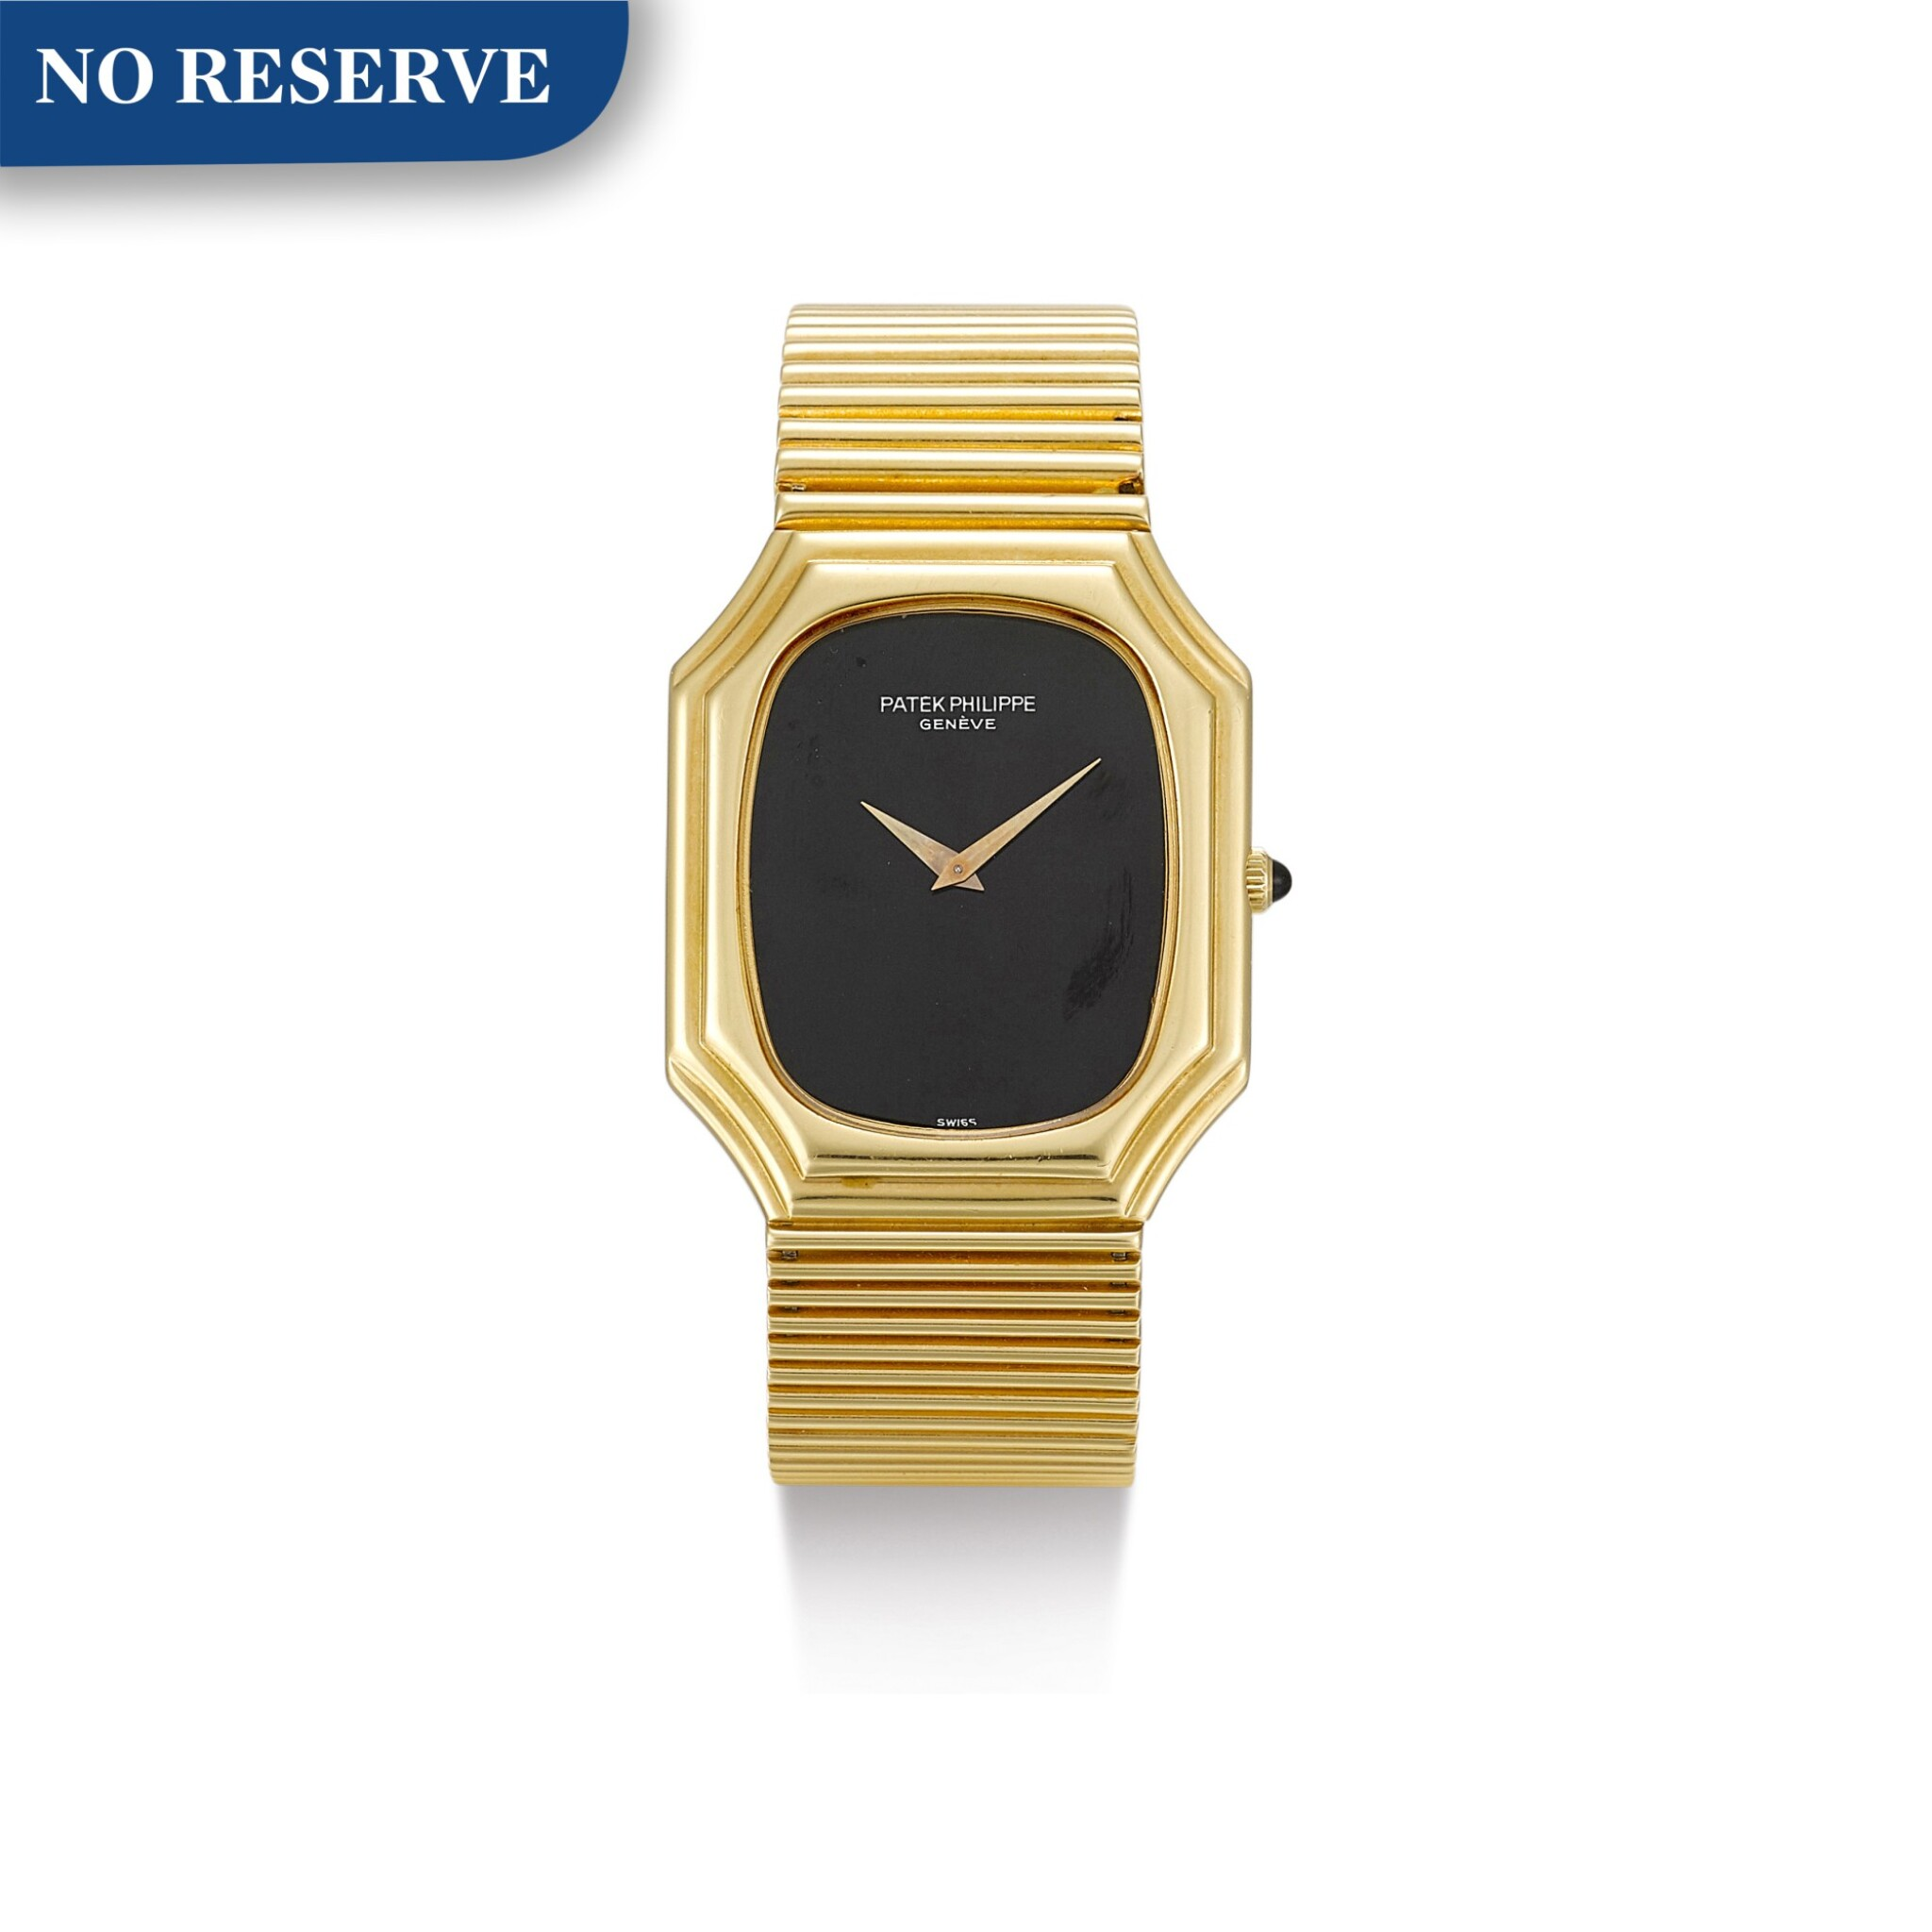 View full screen - View 1 of Lot 616. PATEK PHILIPPE | REFERENCE 3729/1,  A YELLOW GOLD BRACELET WATCH WITH ONYX DIAL, MADE IN 1976.